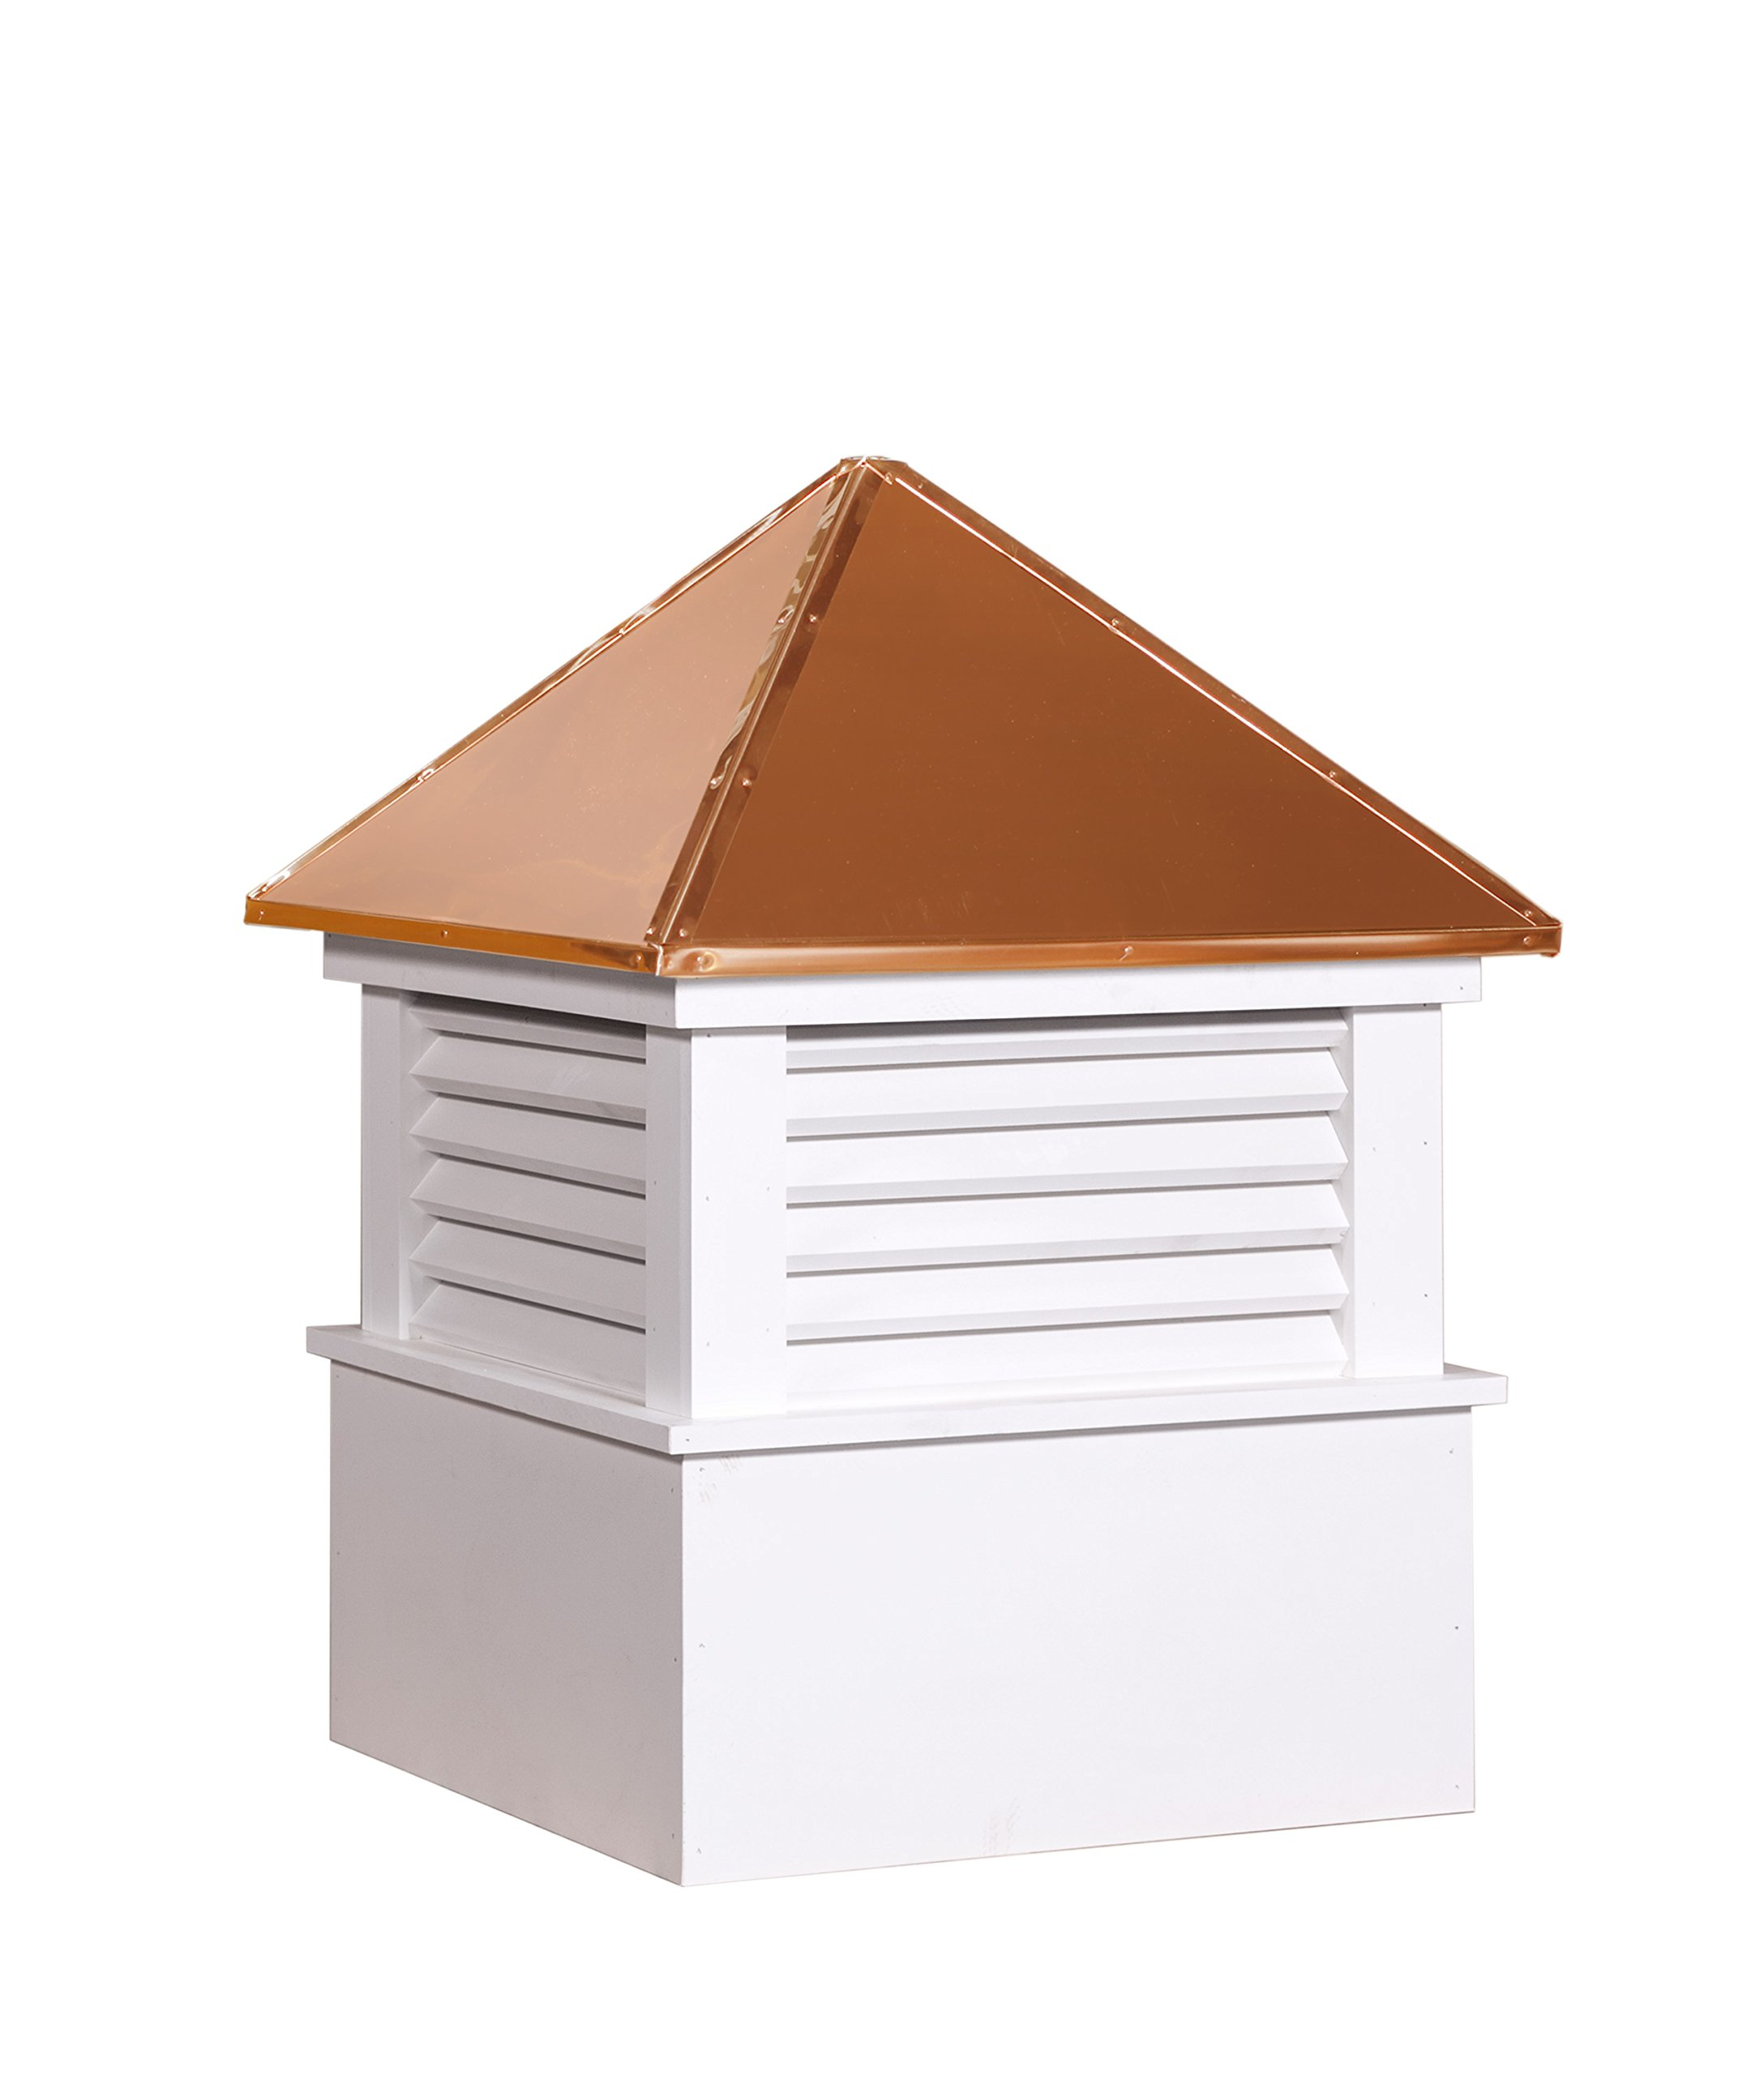 East Coast Weathervanes and Cupolas Vinyl Douglas Cupola (Vinyl, 21 in square x 30 in tall) by East Coast Weathervanes and Cupolas